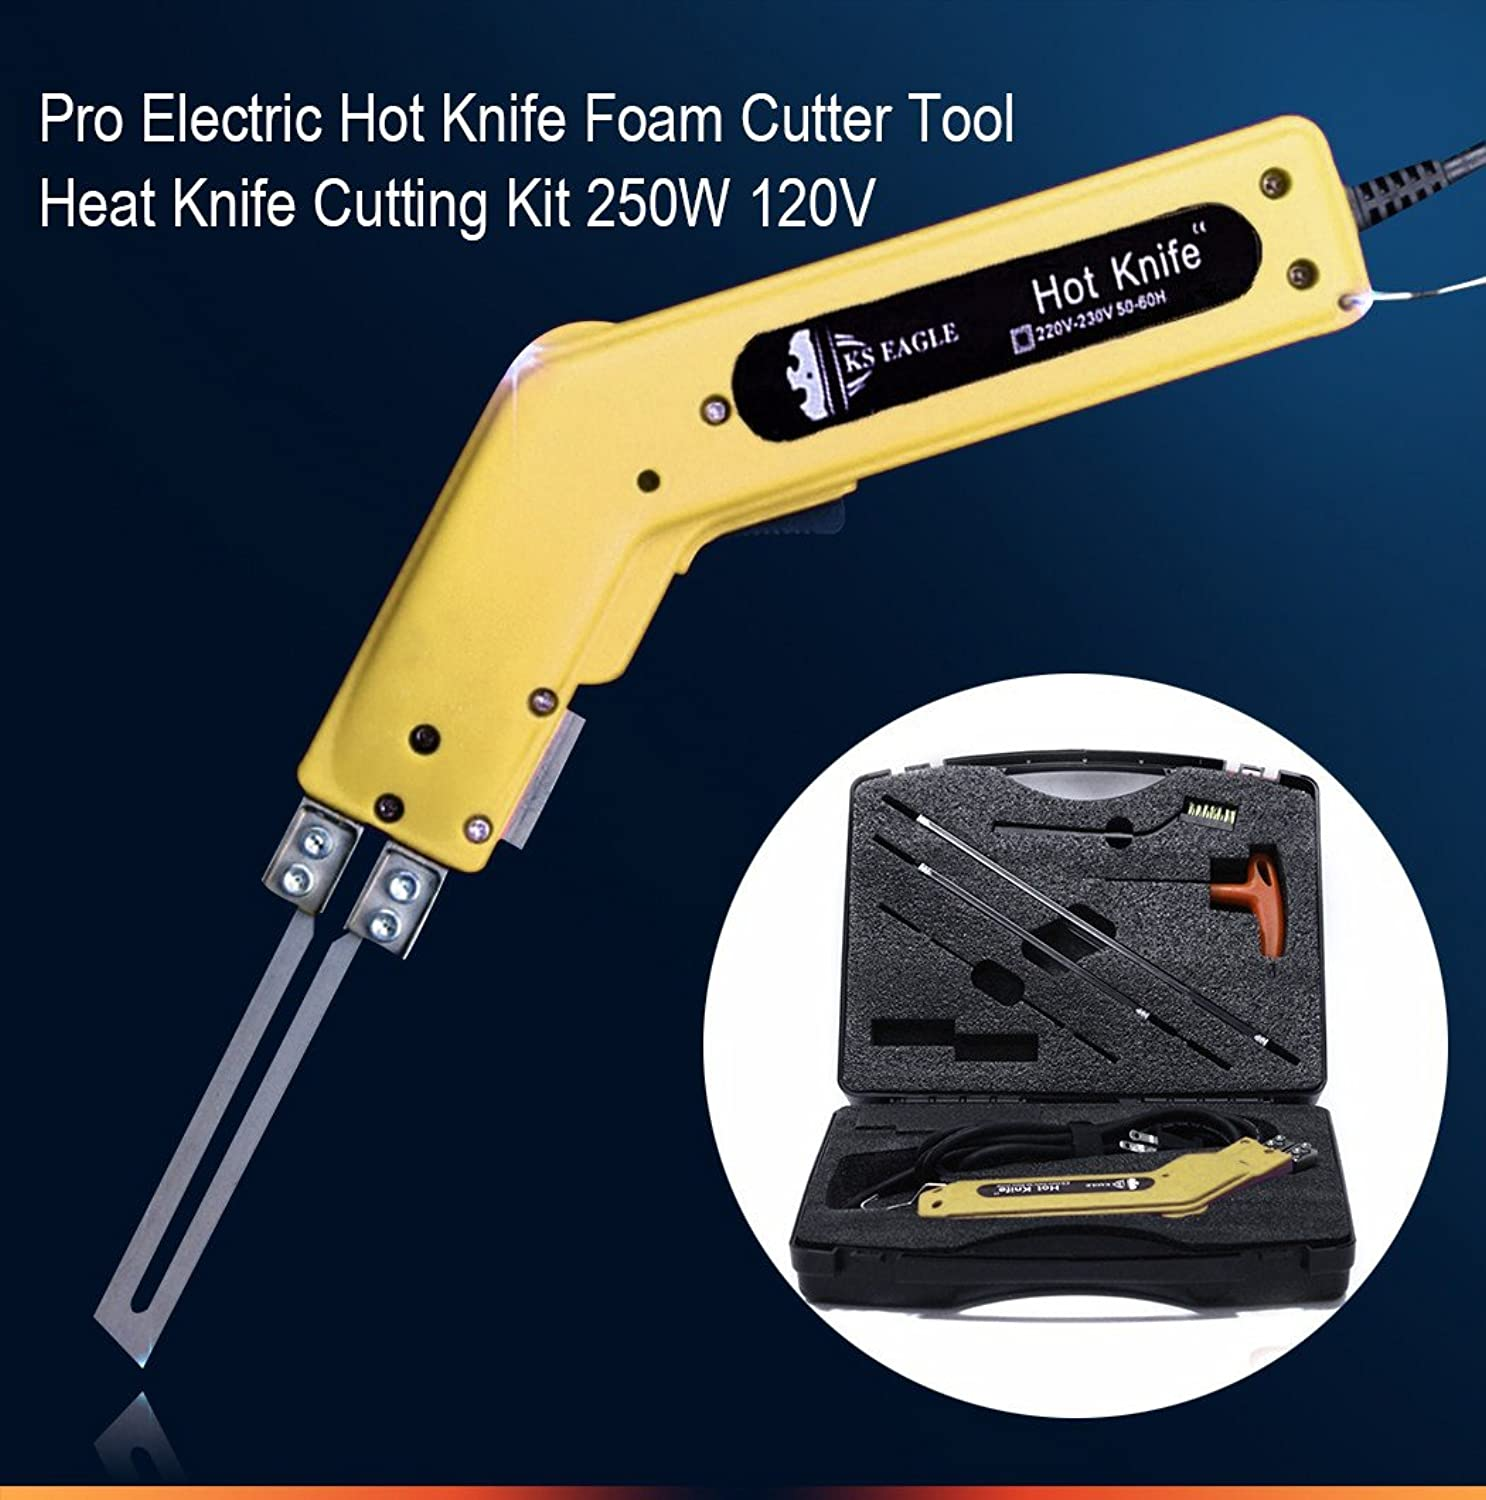 Pro Electric Hot Knife Foam Cutter Tool Heat Knife Cutting Kit 250W 120V xtvkwb8005528